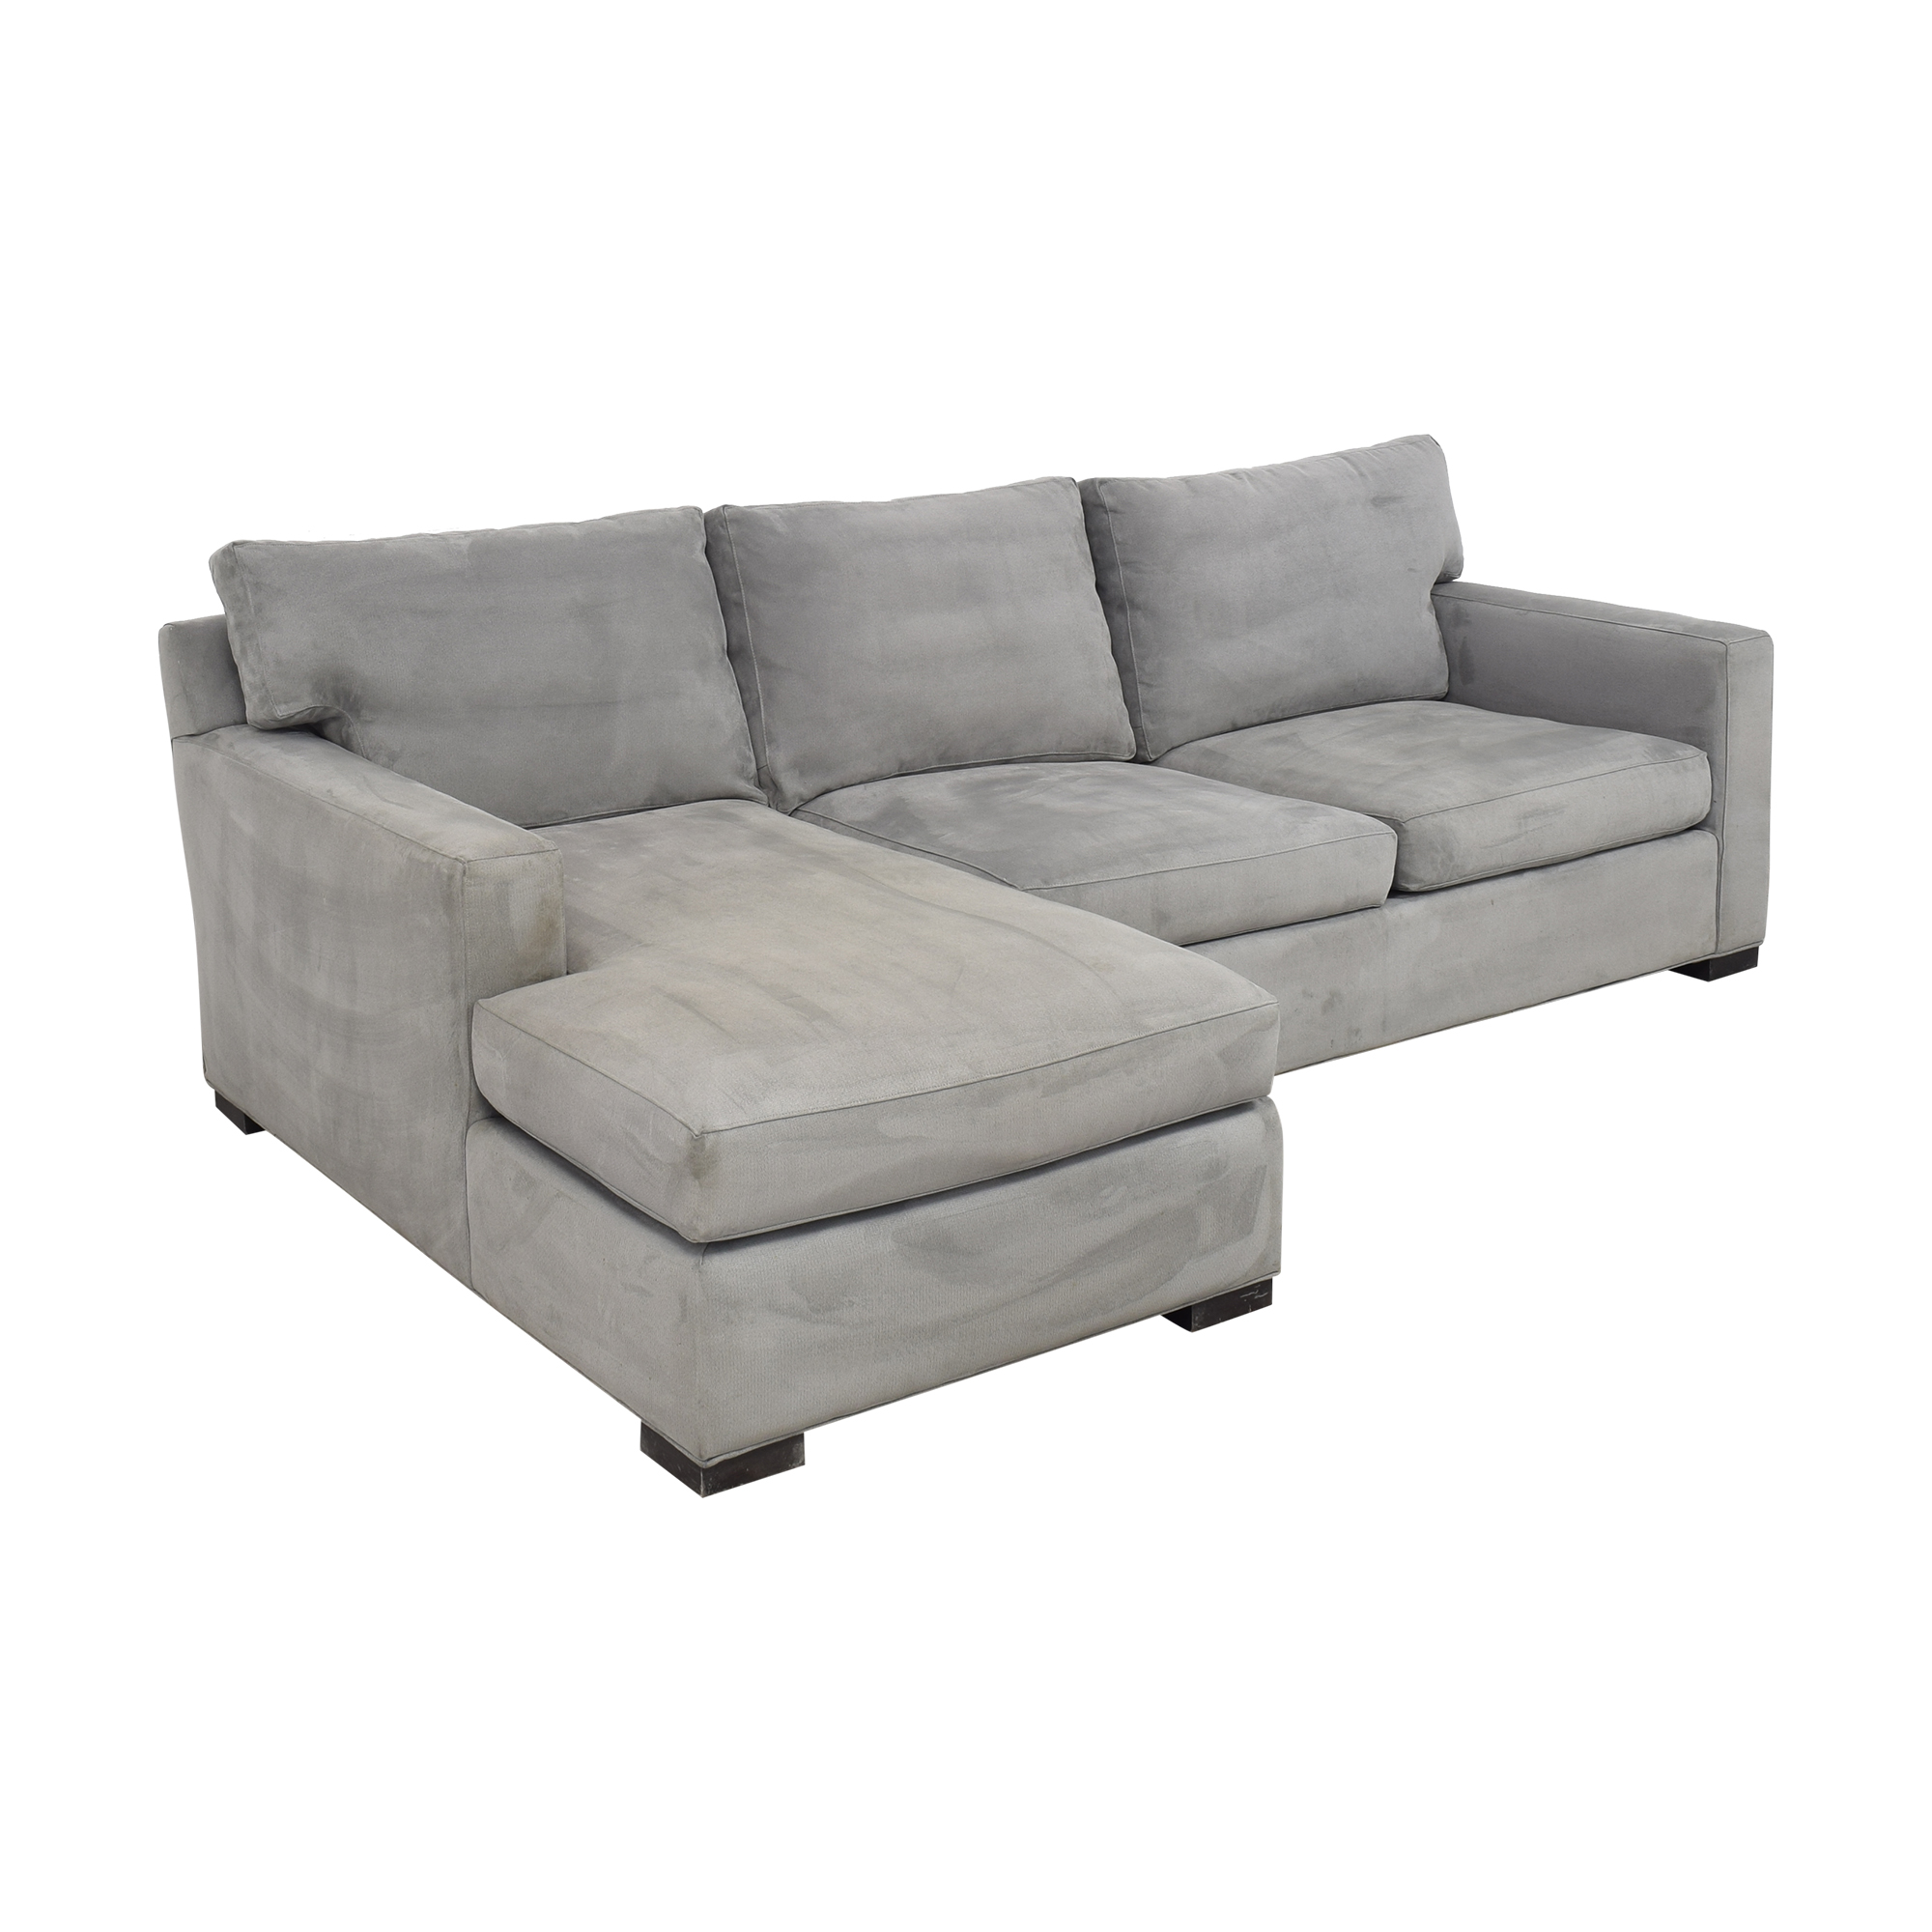 Crate & Barrel Axis II Chaise Sectional Sofa / Sectionals